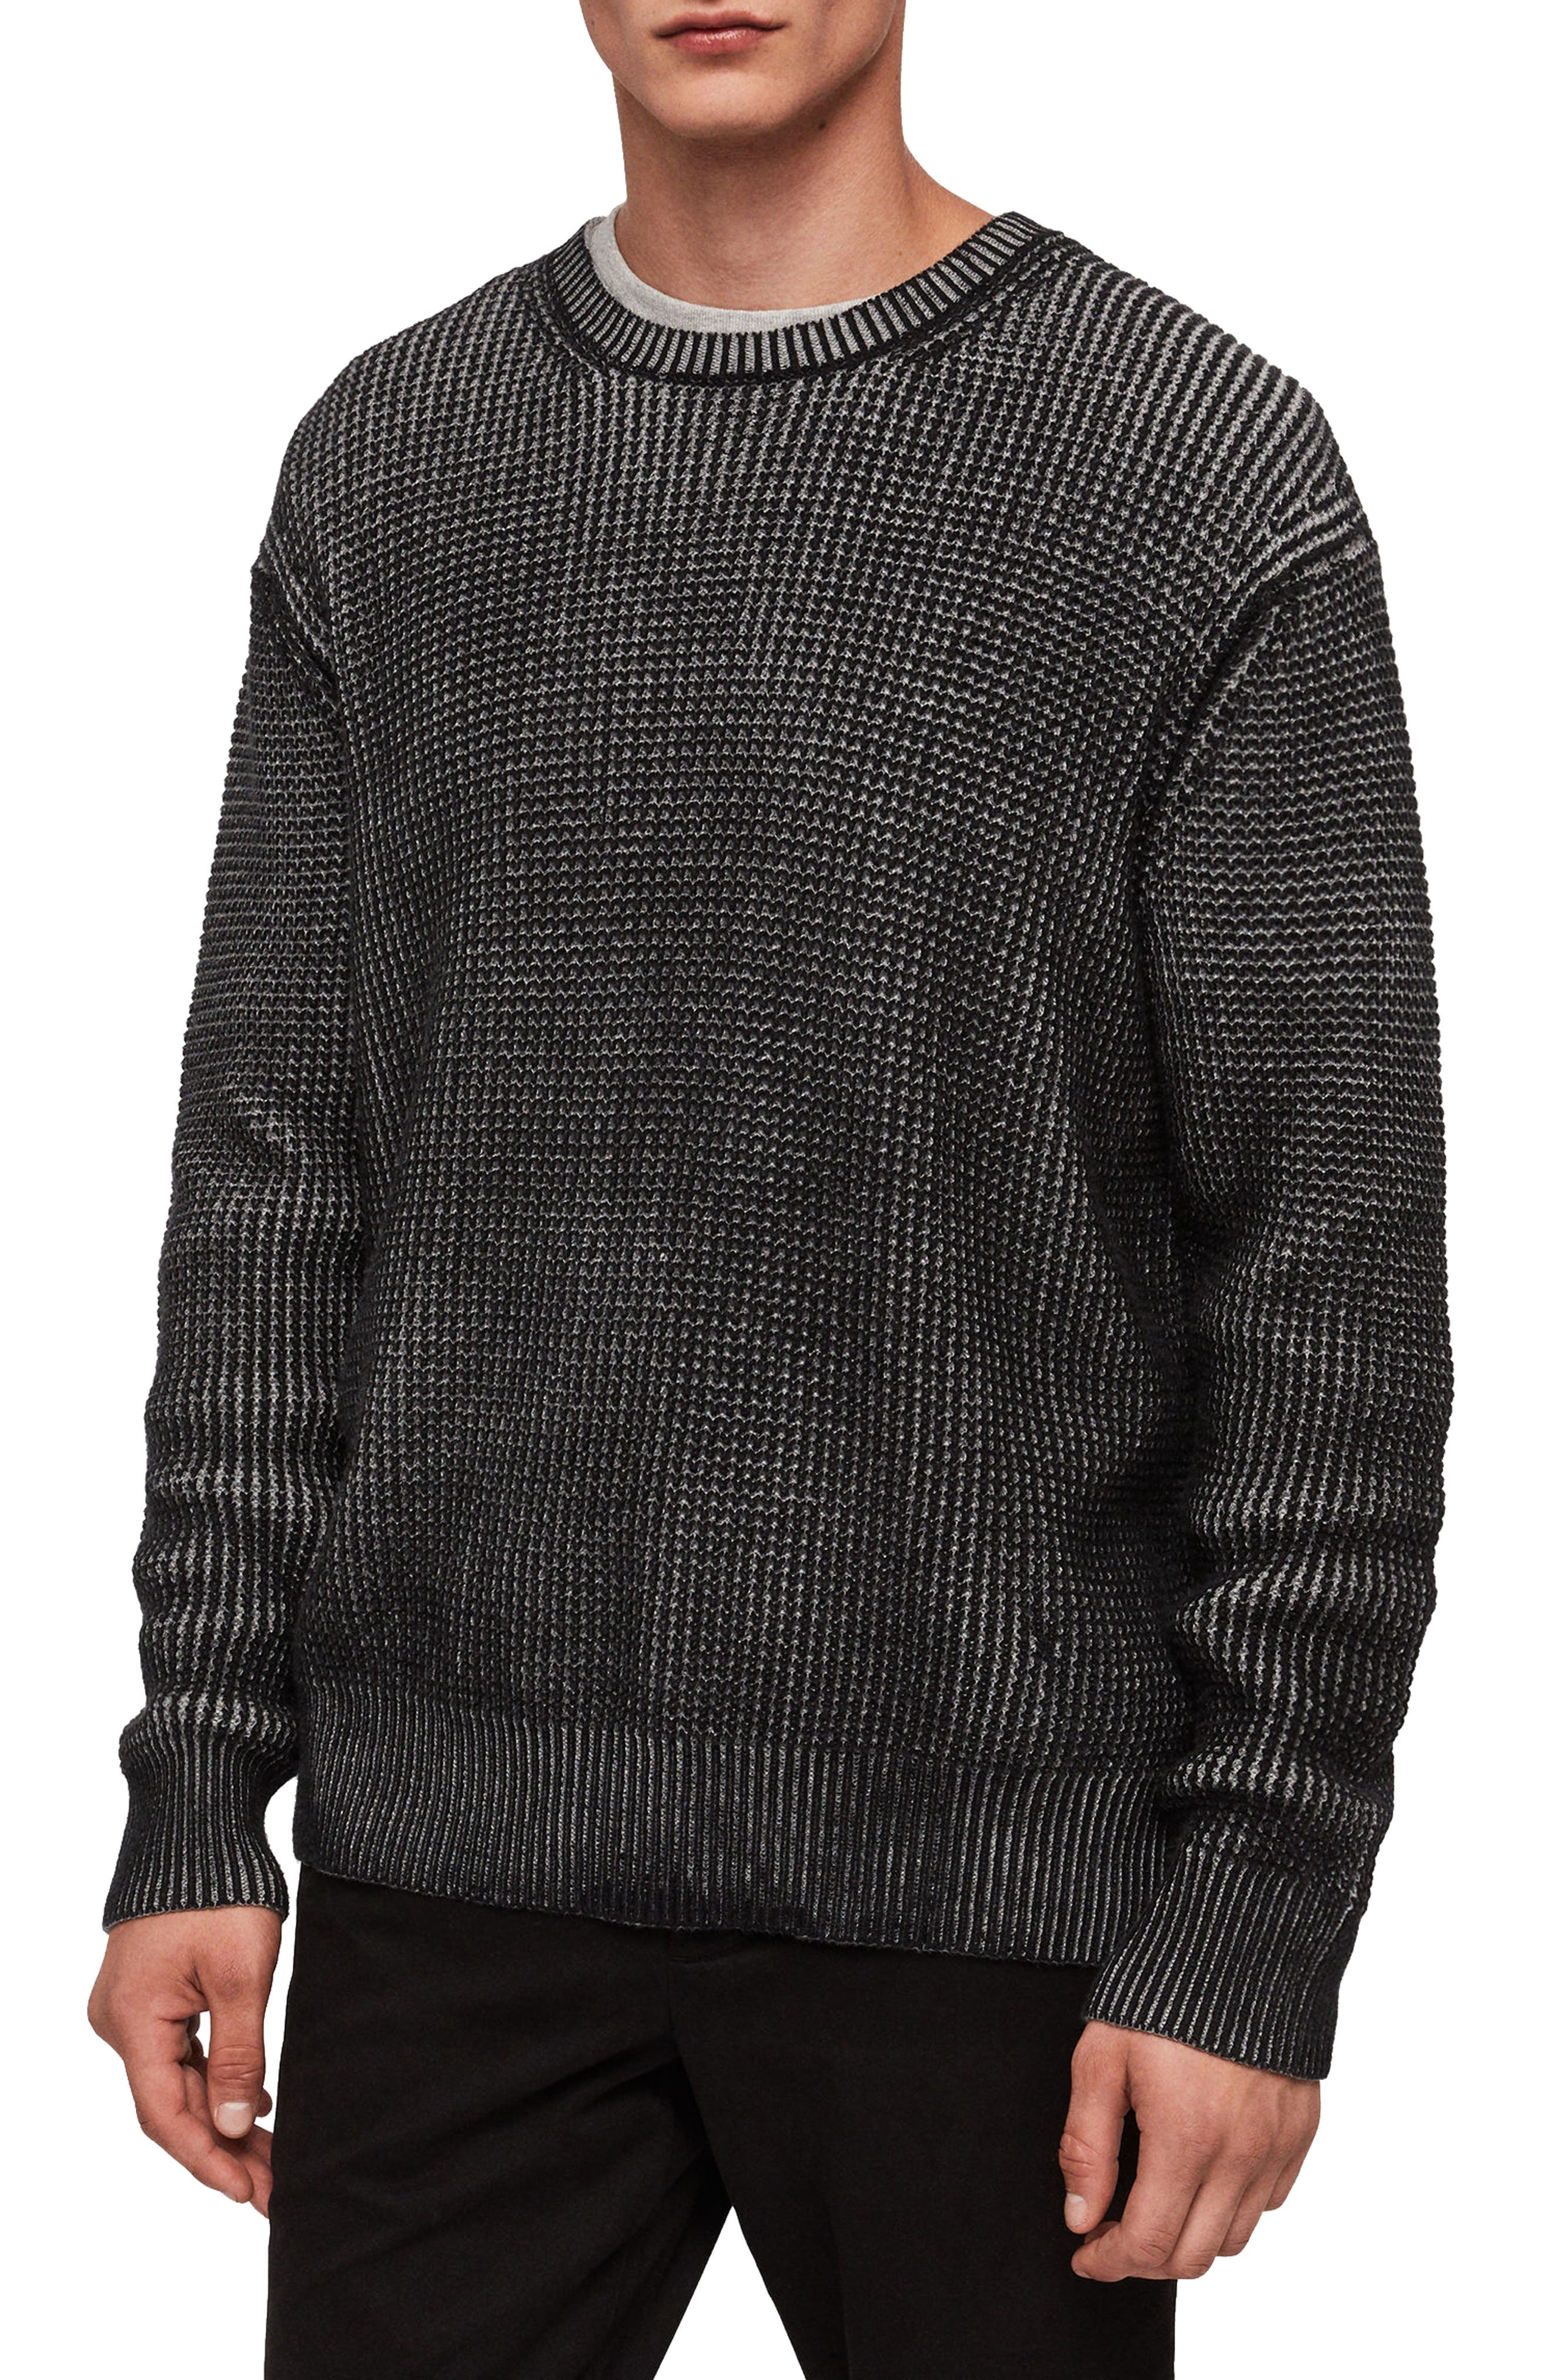 Quarter Crewneck Sweater,                             Main thumbnail 1, color,                             020